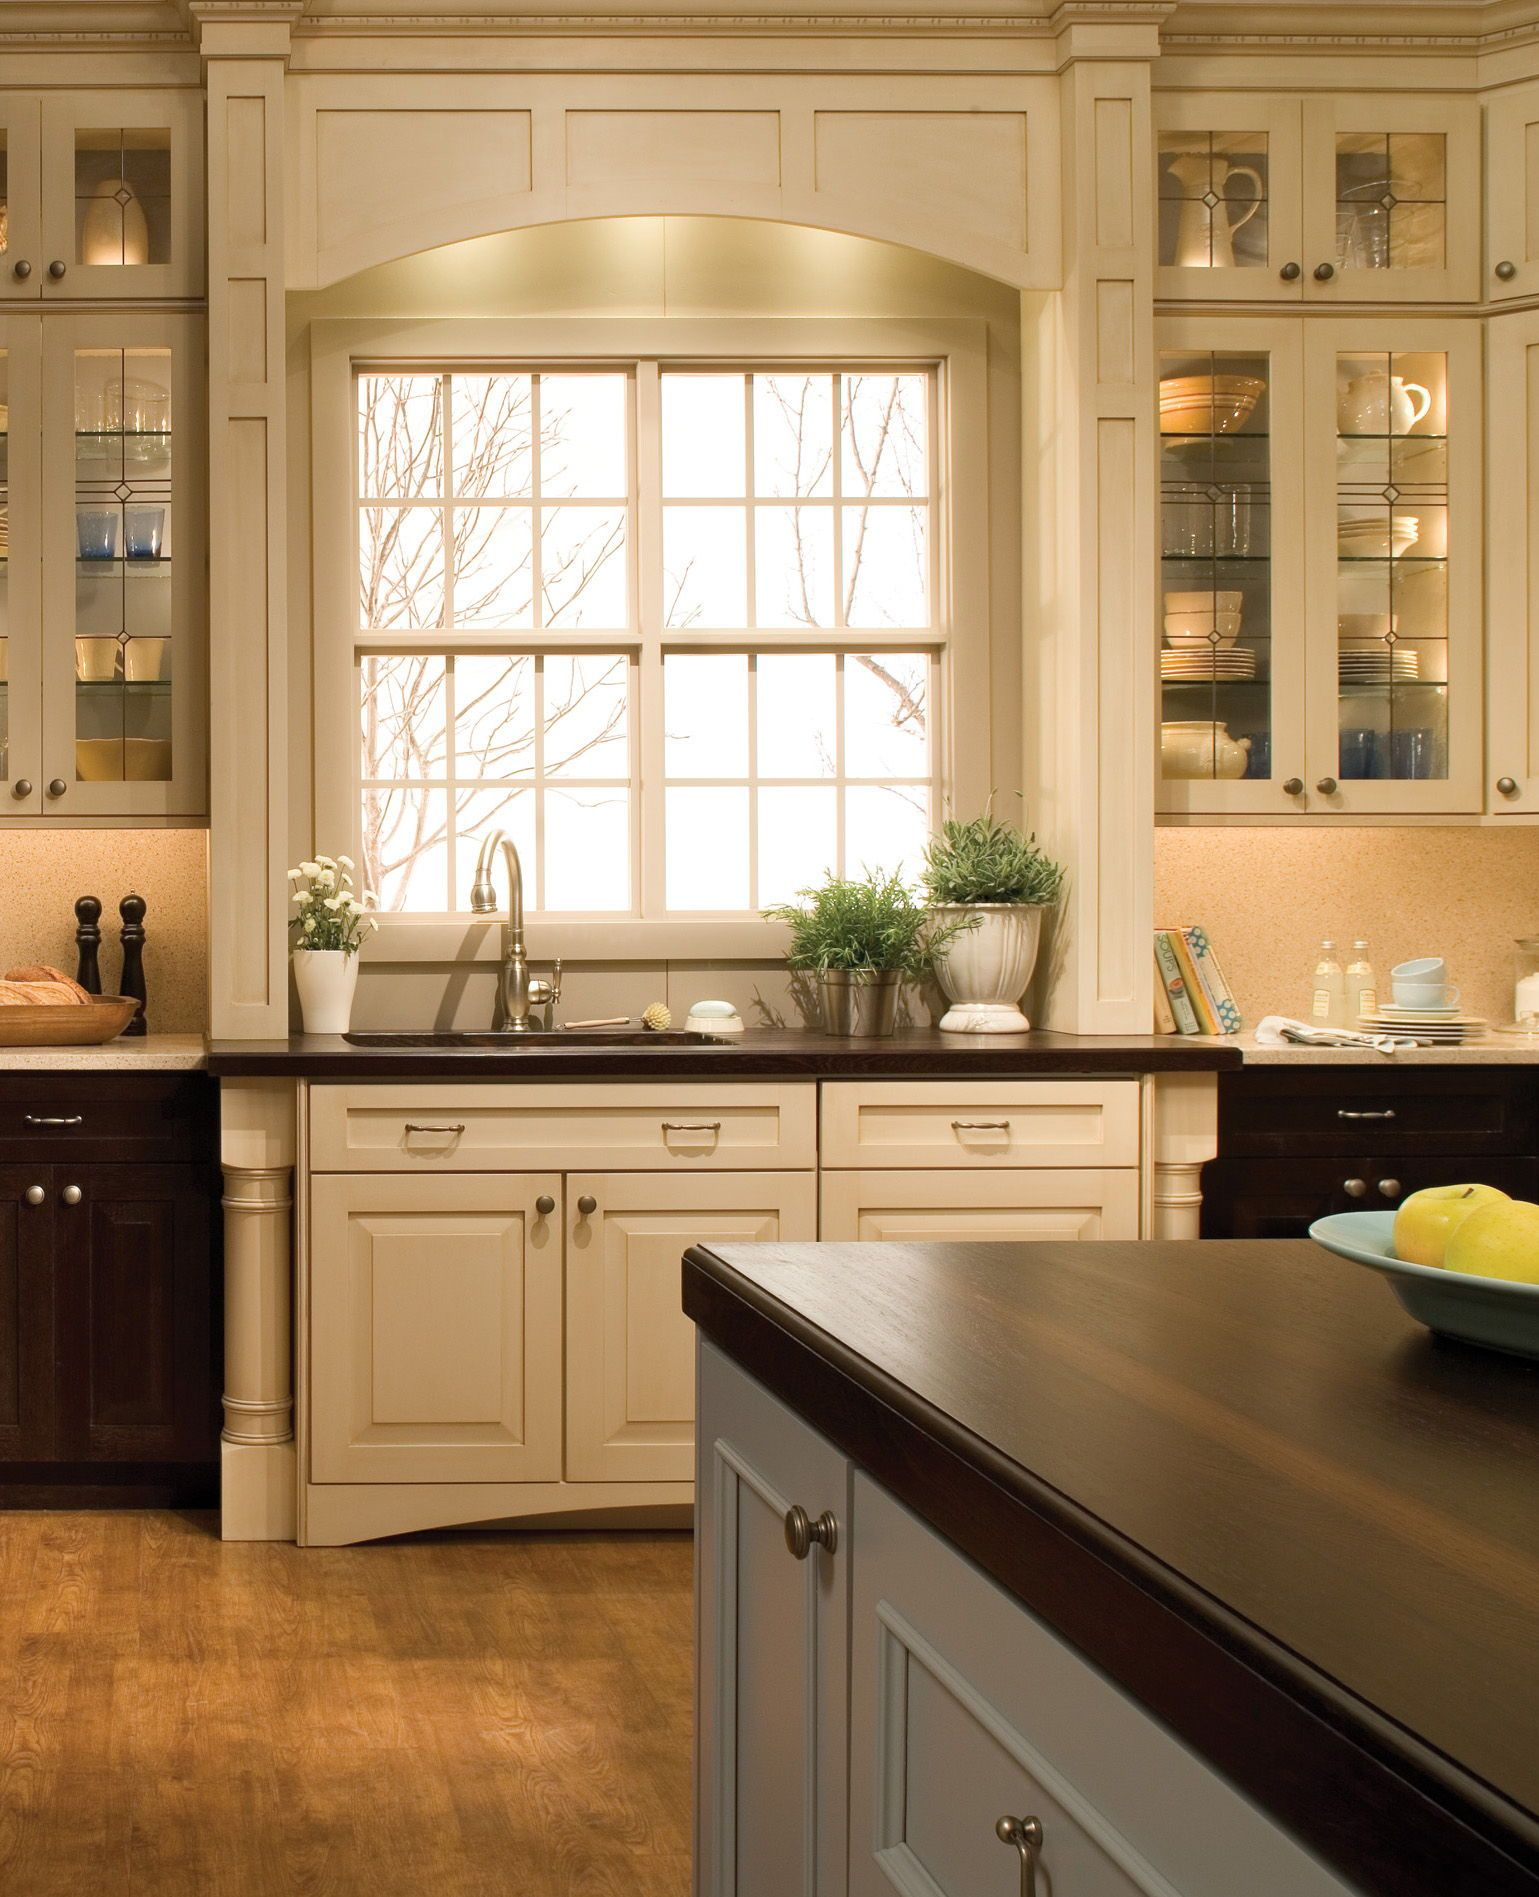 Dura Supremeu0027s Crestwood #Cabinetry. Shown With The U201cLancasteru201d  Cabinet Door Style In Quarter Sawn Oak With U201cCocoa Brownu201d Stained  Finish ...